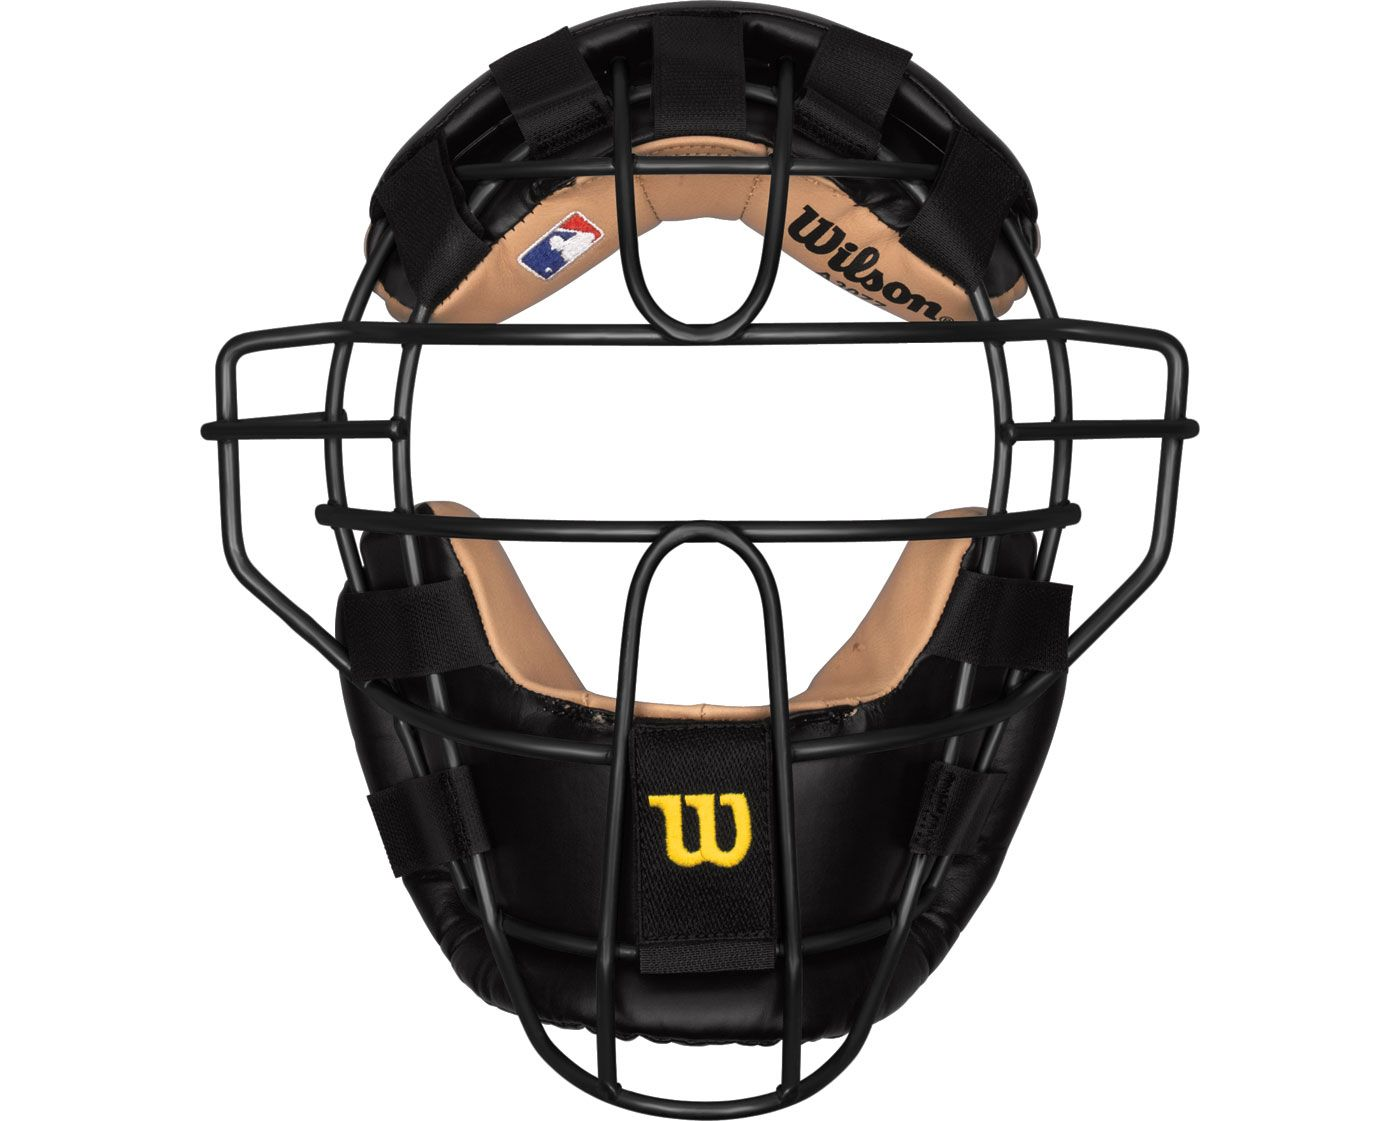 Wilson New View Umpire's Facemask